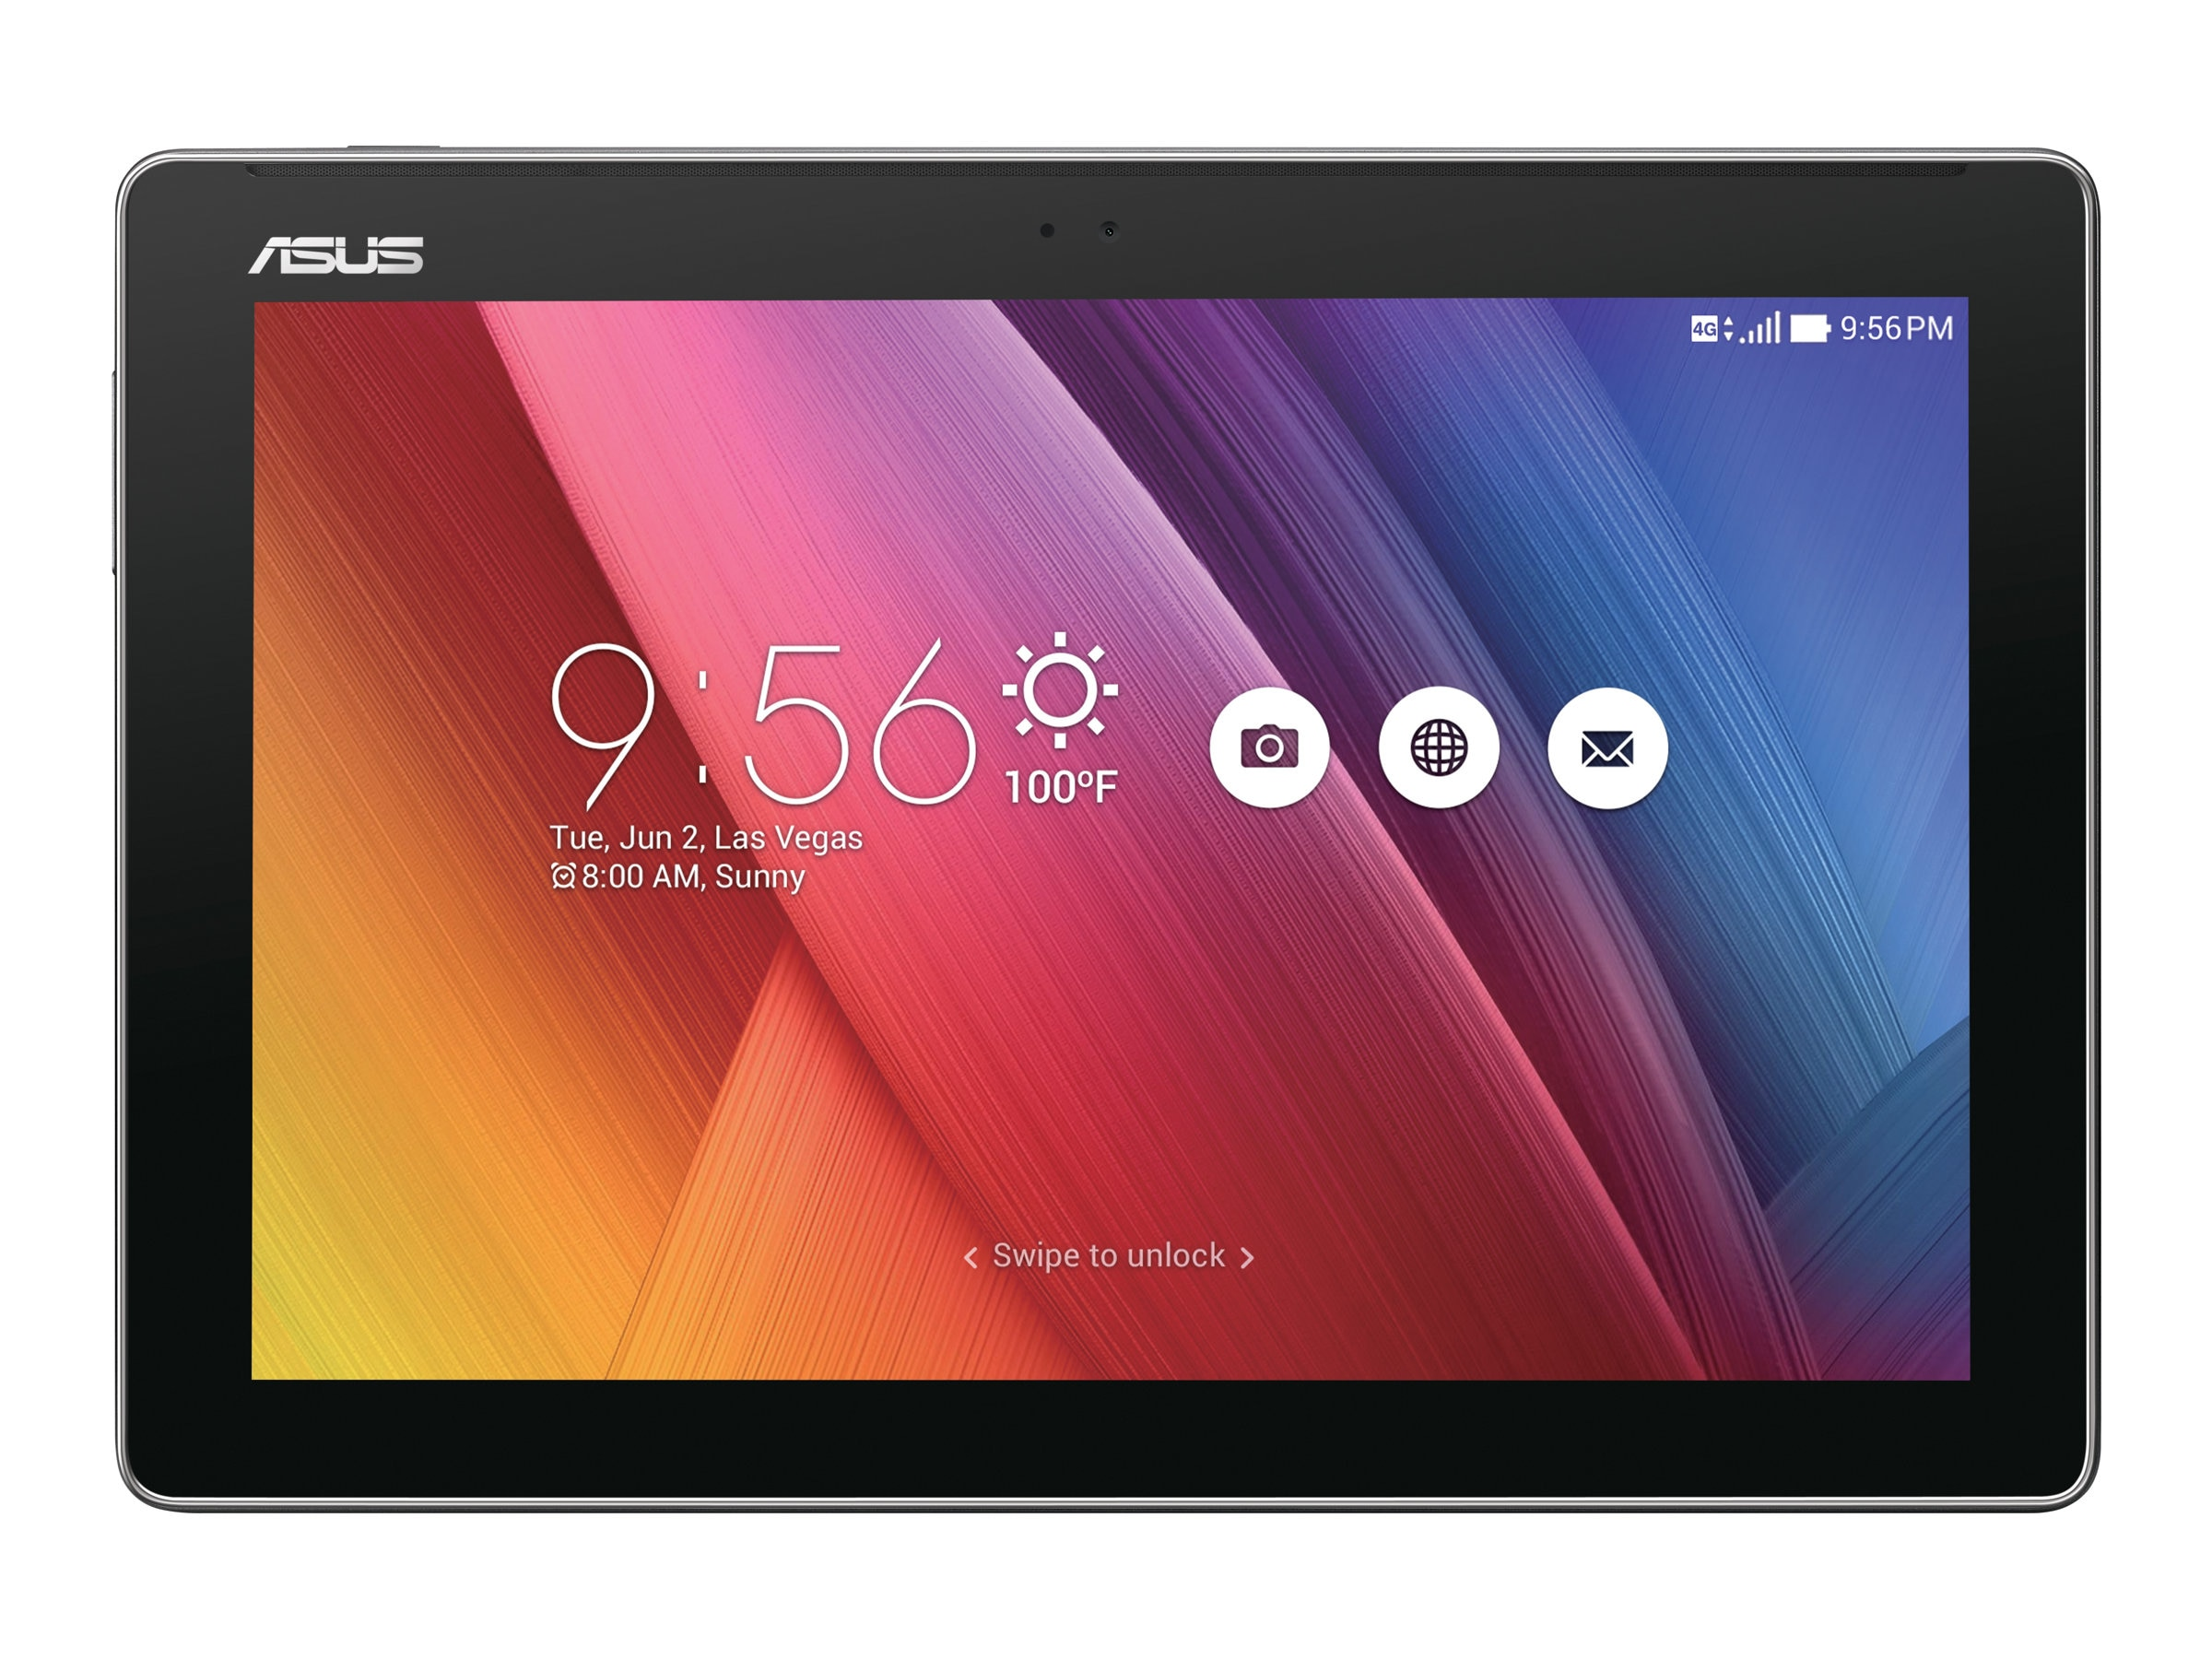 Asus Tablet Intel C3200 2GB 16GB 10.1, 90NP0231-M02200, 24514049, Tablets